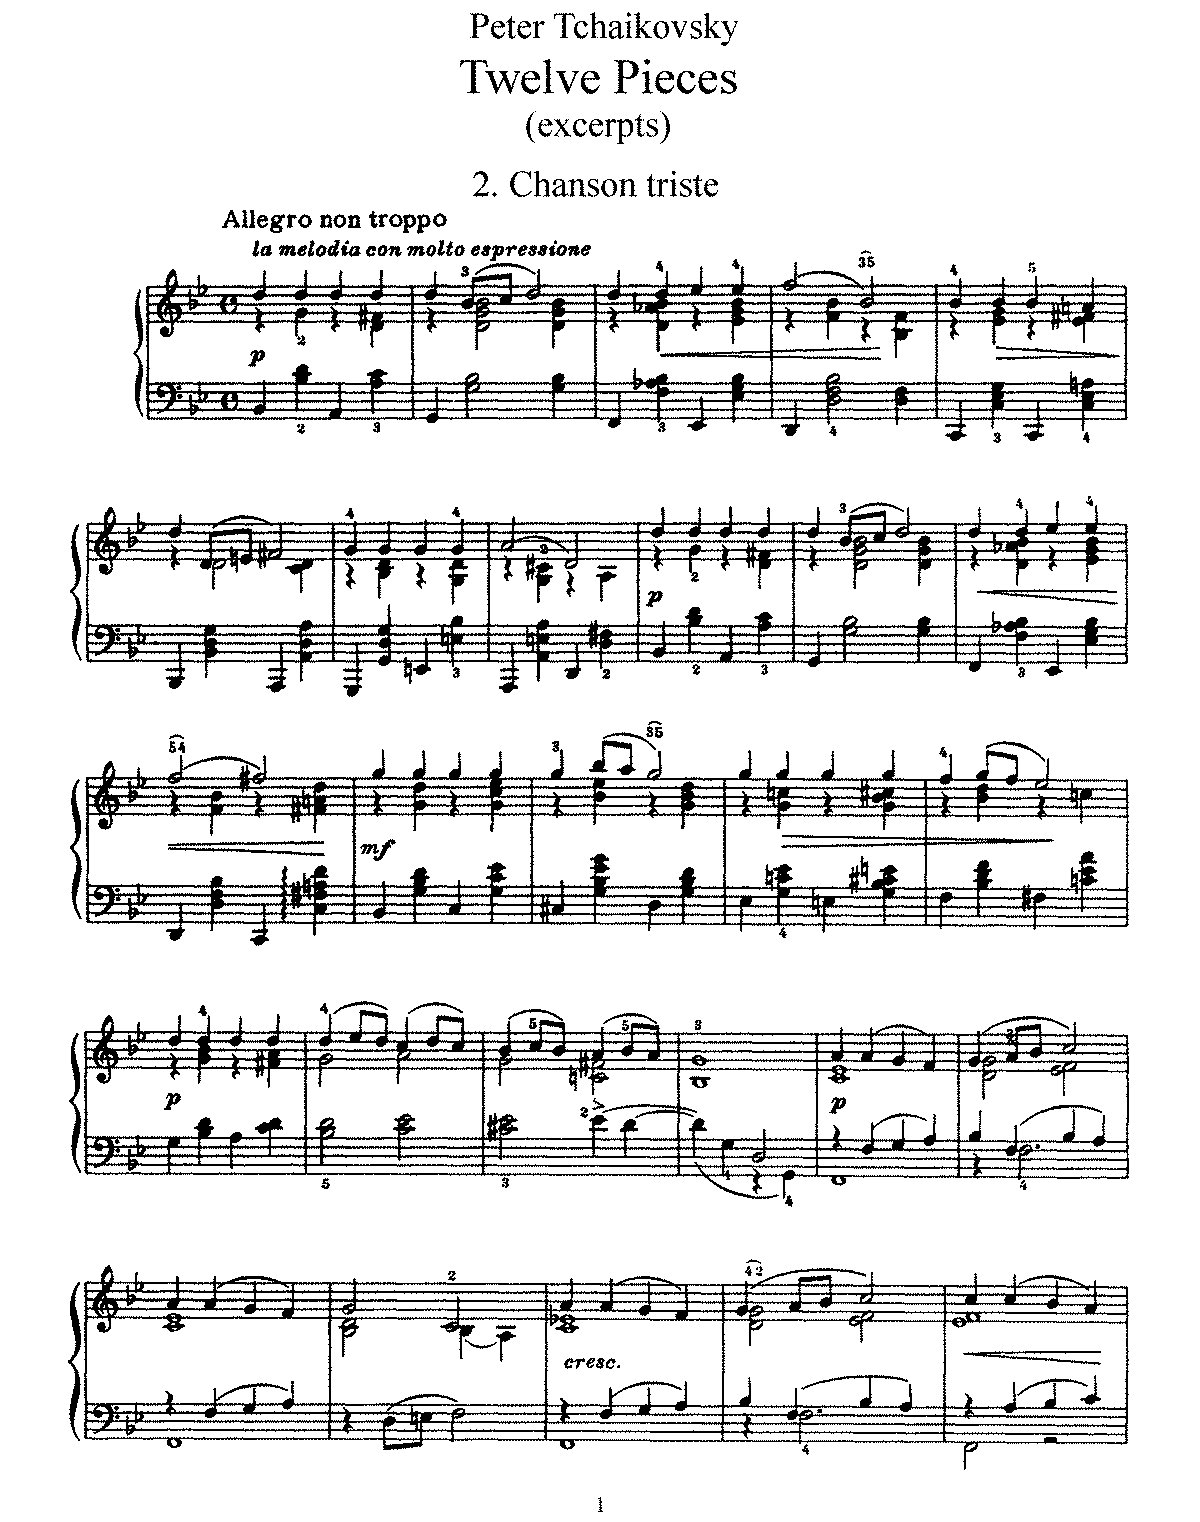 PMLP45130-Tchaikovsky op40 12 Pieces (excerpts).pdf